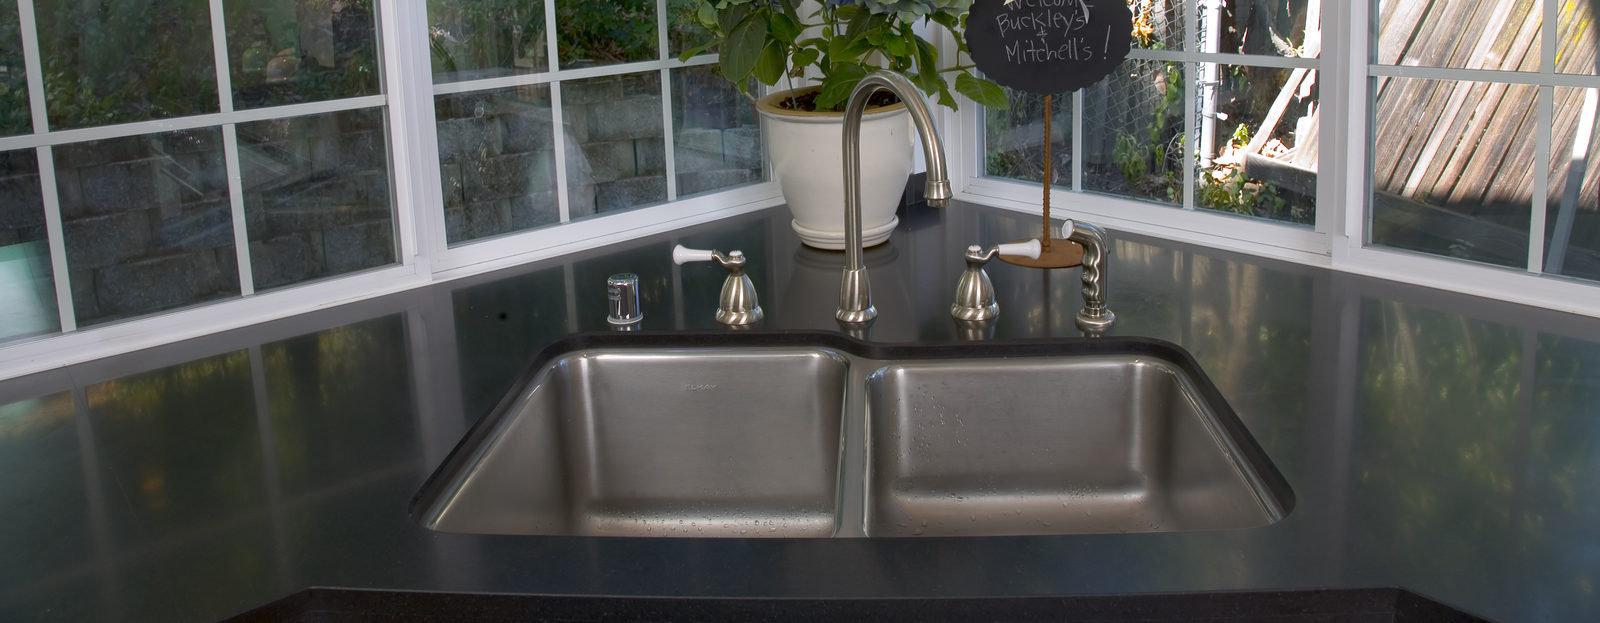 Kitchen Sink Cost Prices For Install Supply